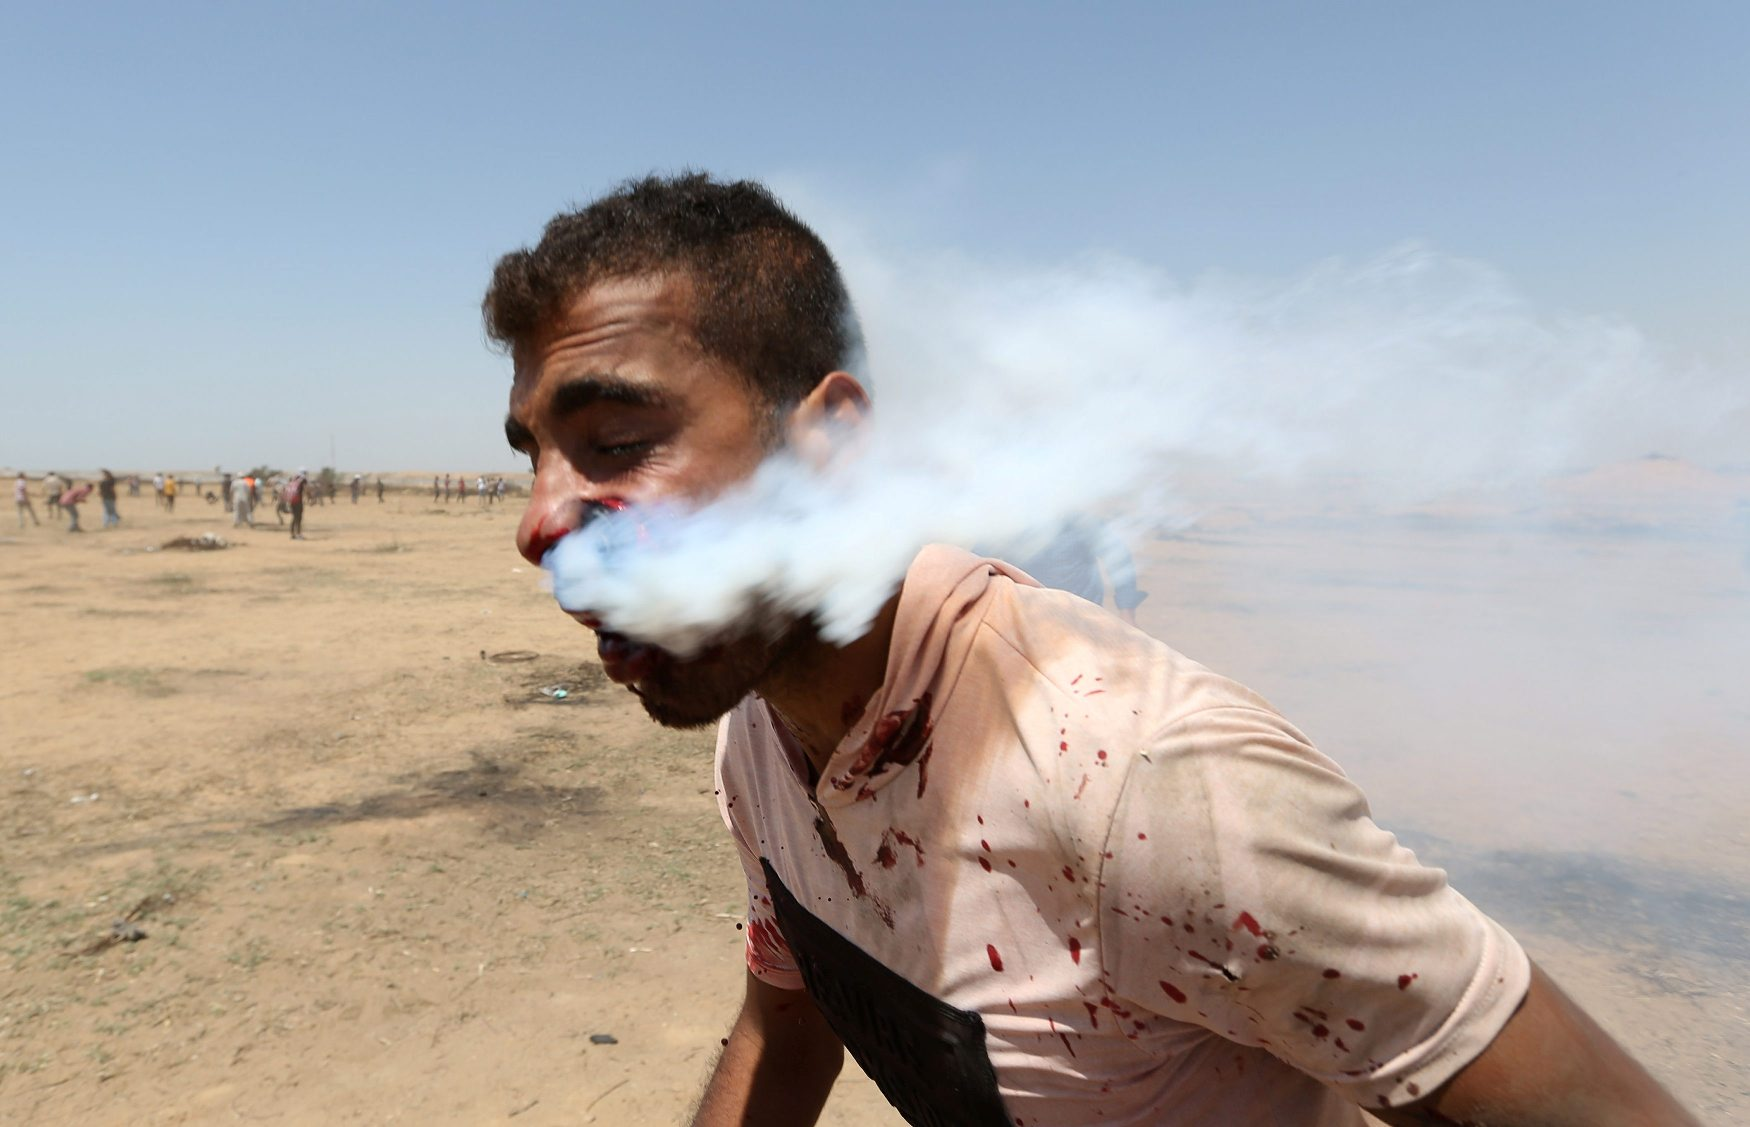 ATTENTION EDITORS - VISUAL COVERAGE OF SCENES OF INJURY OR DEATH A wounded Palestinian demonstrator is hit in the face with a tear gas canister fired by Israeli troops during a protest marking al-Quds Day, (Jerusalem Day), at the Israel-Gaza border in the southern Gaza Strip June 8, 2018. REUTERS/Ibraheem Abu Mustafa   TEMPLATE OUT